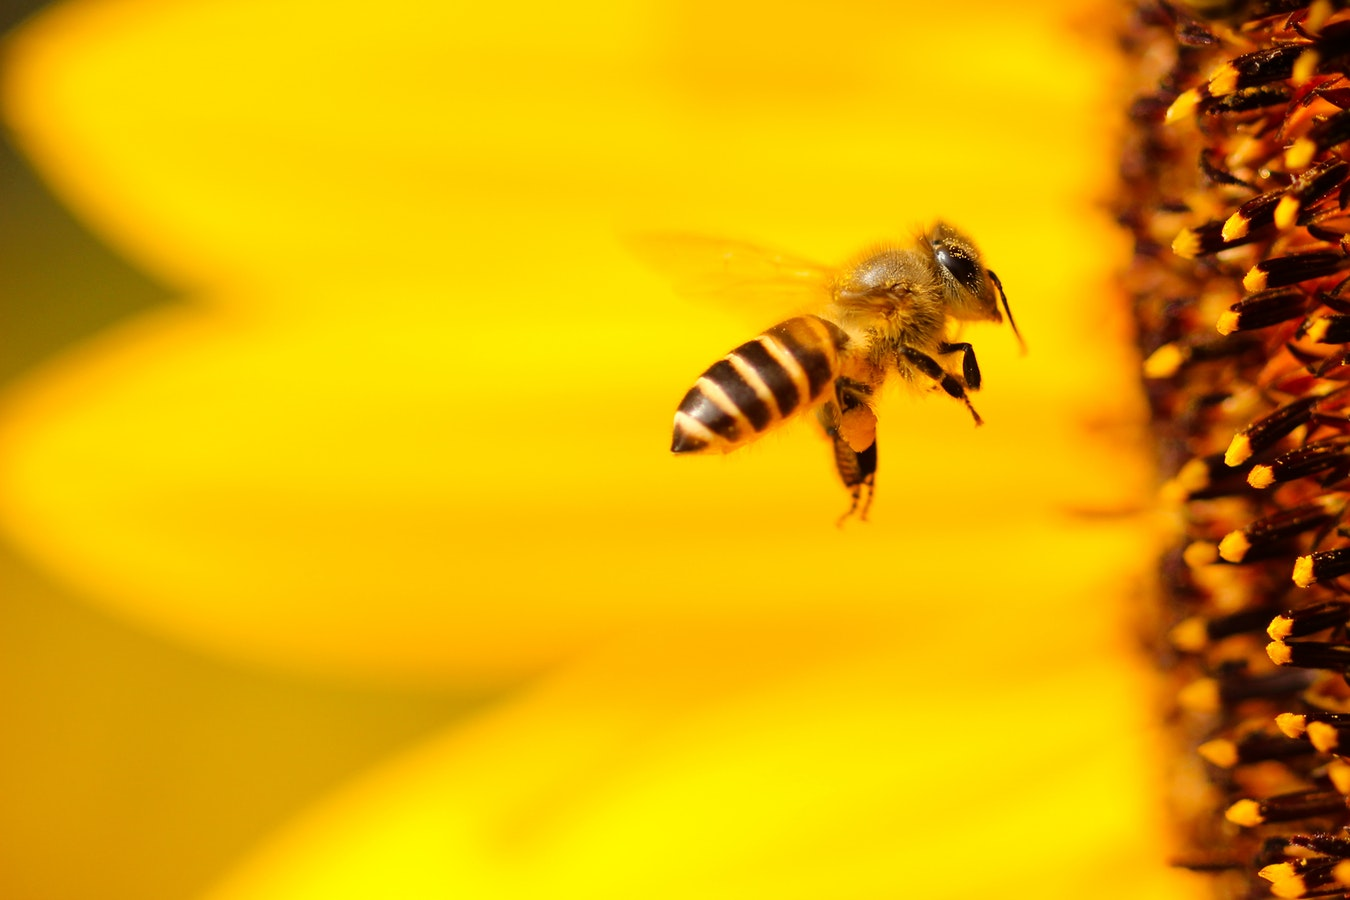 Bee approaching a flower